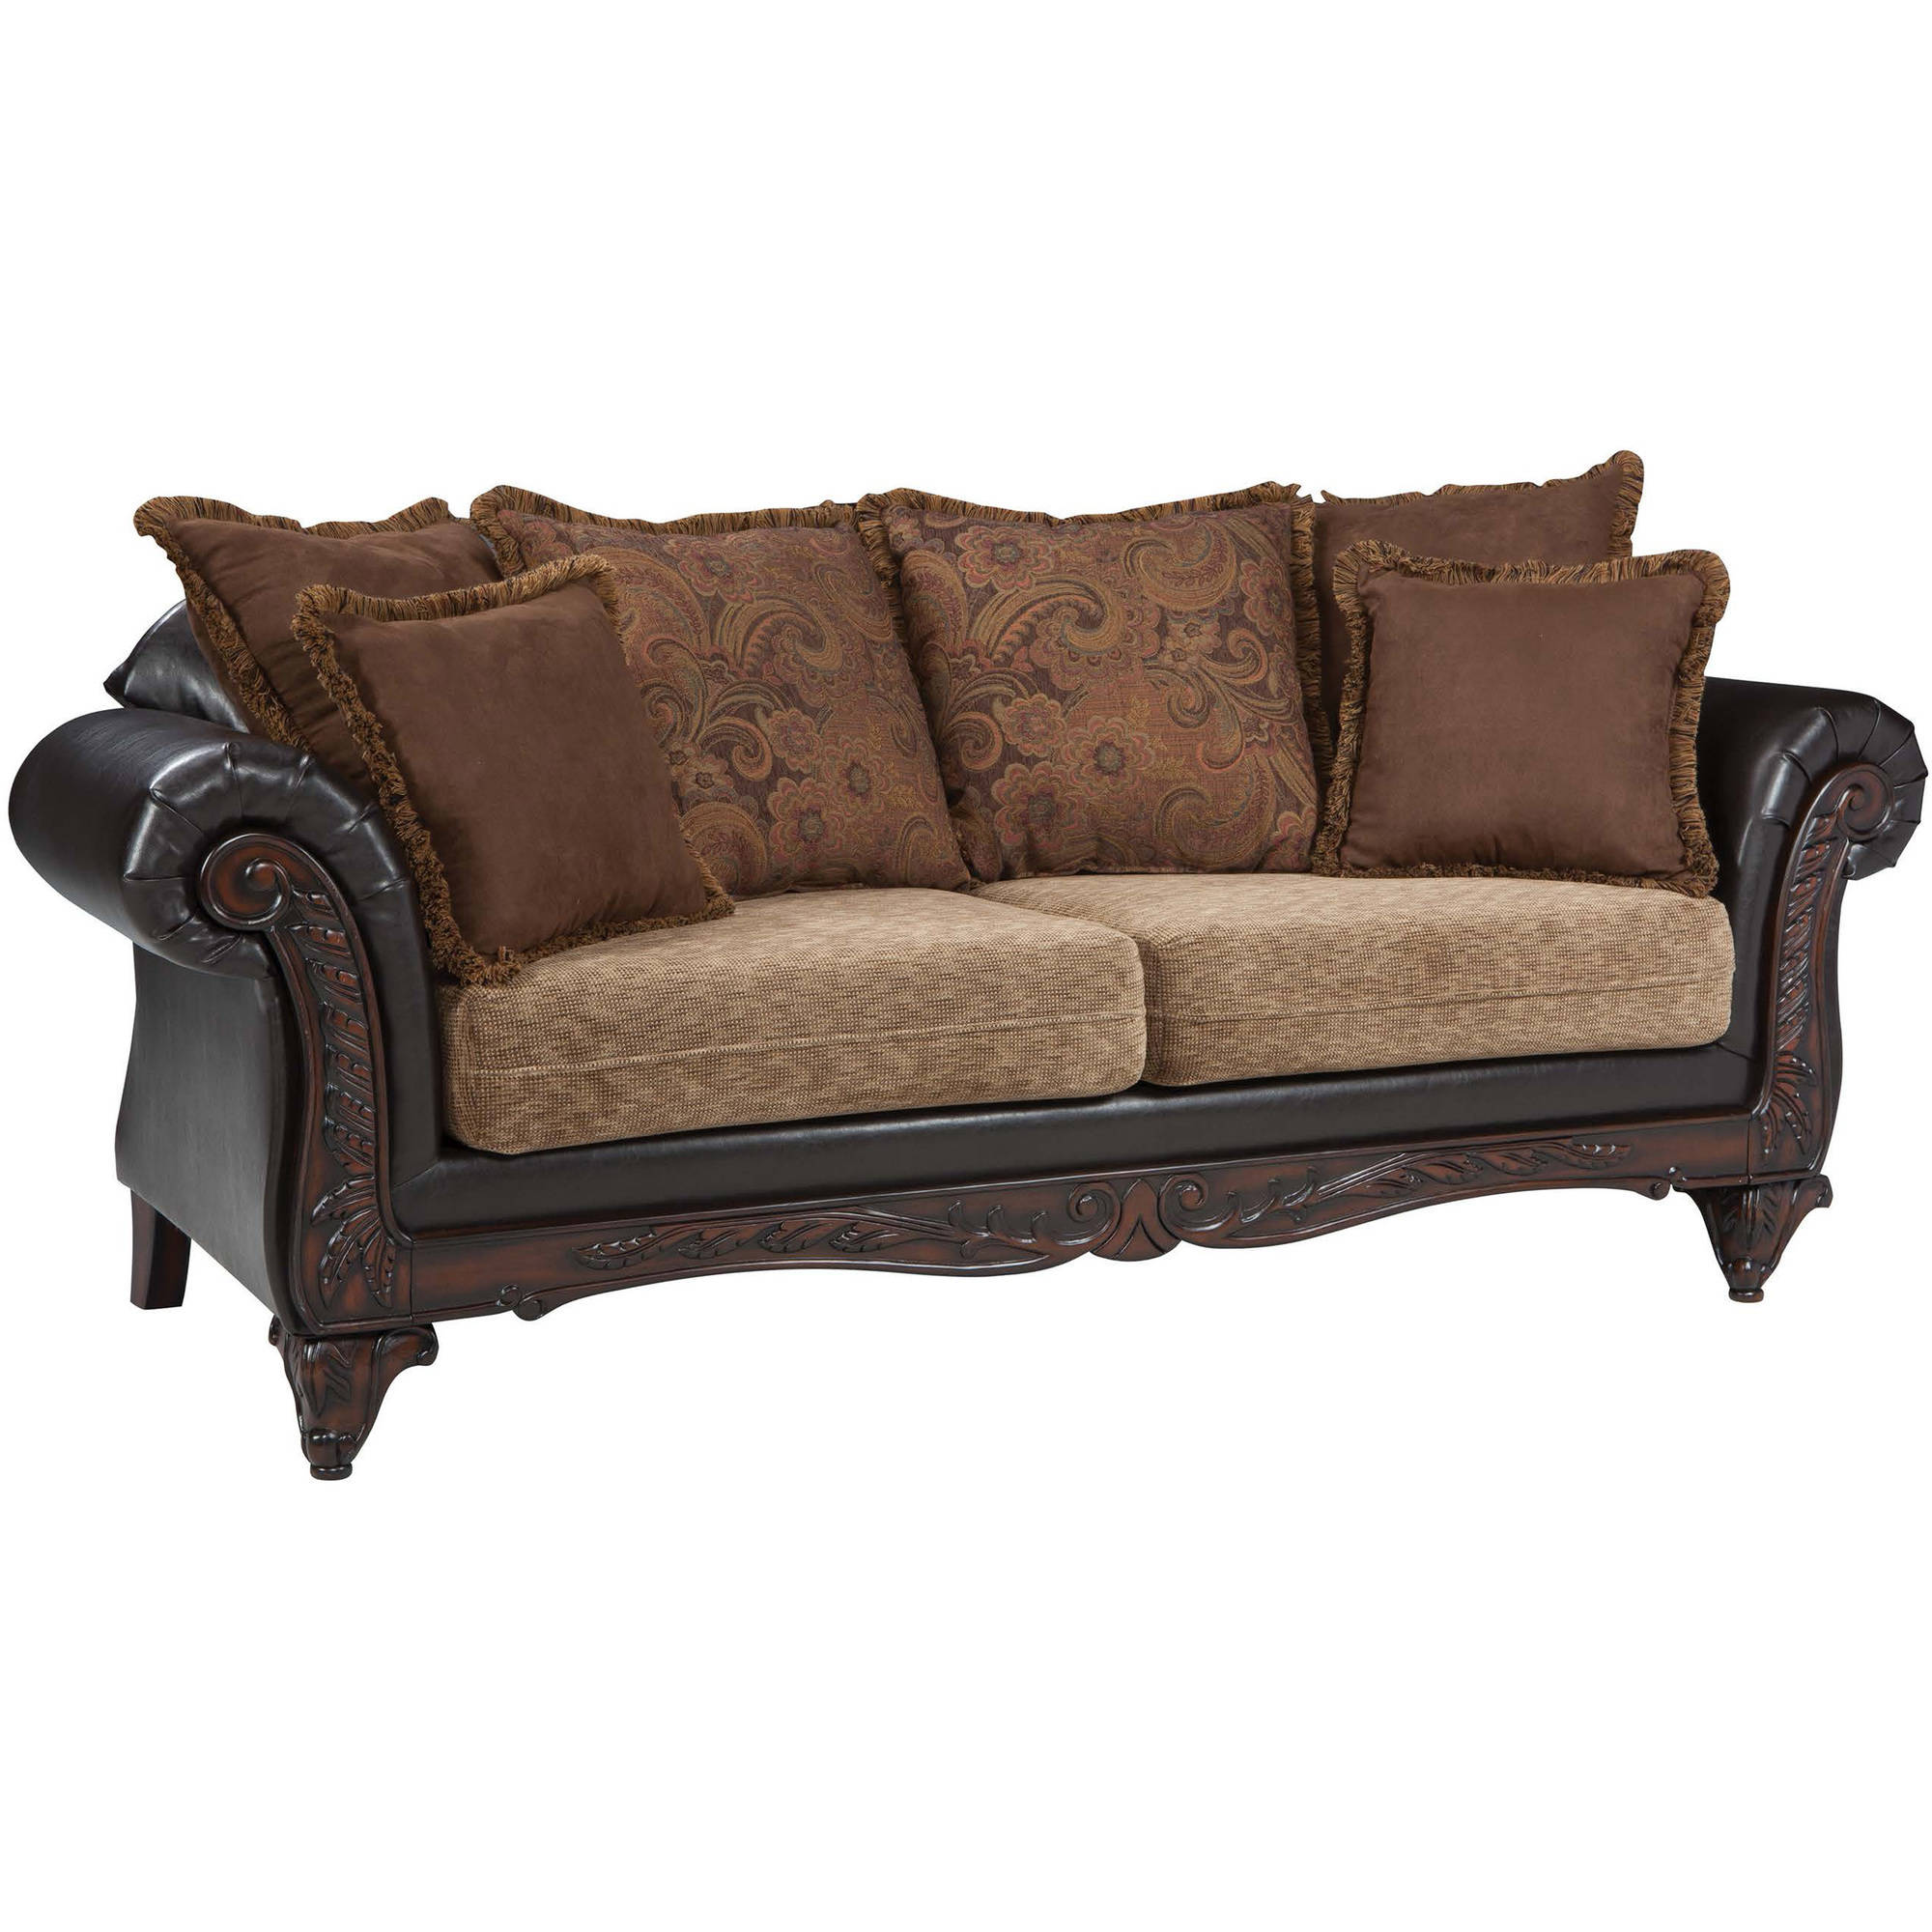 Coaster Company Garroway Sofa, Russet and Chocolate